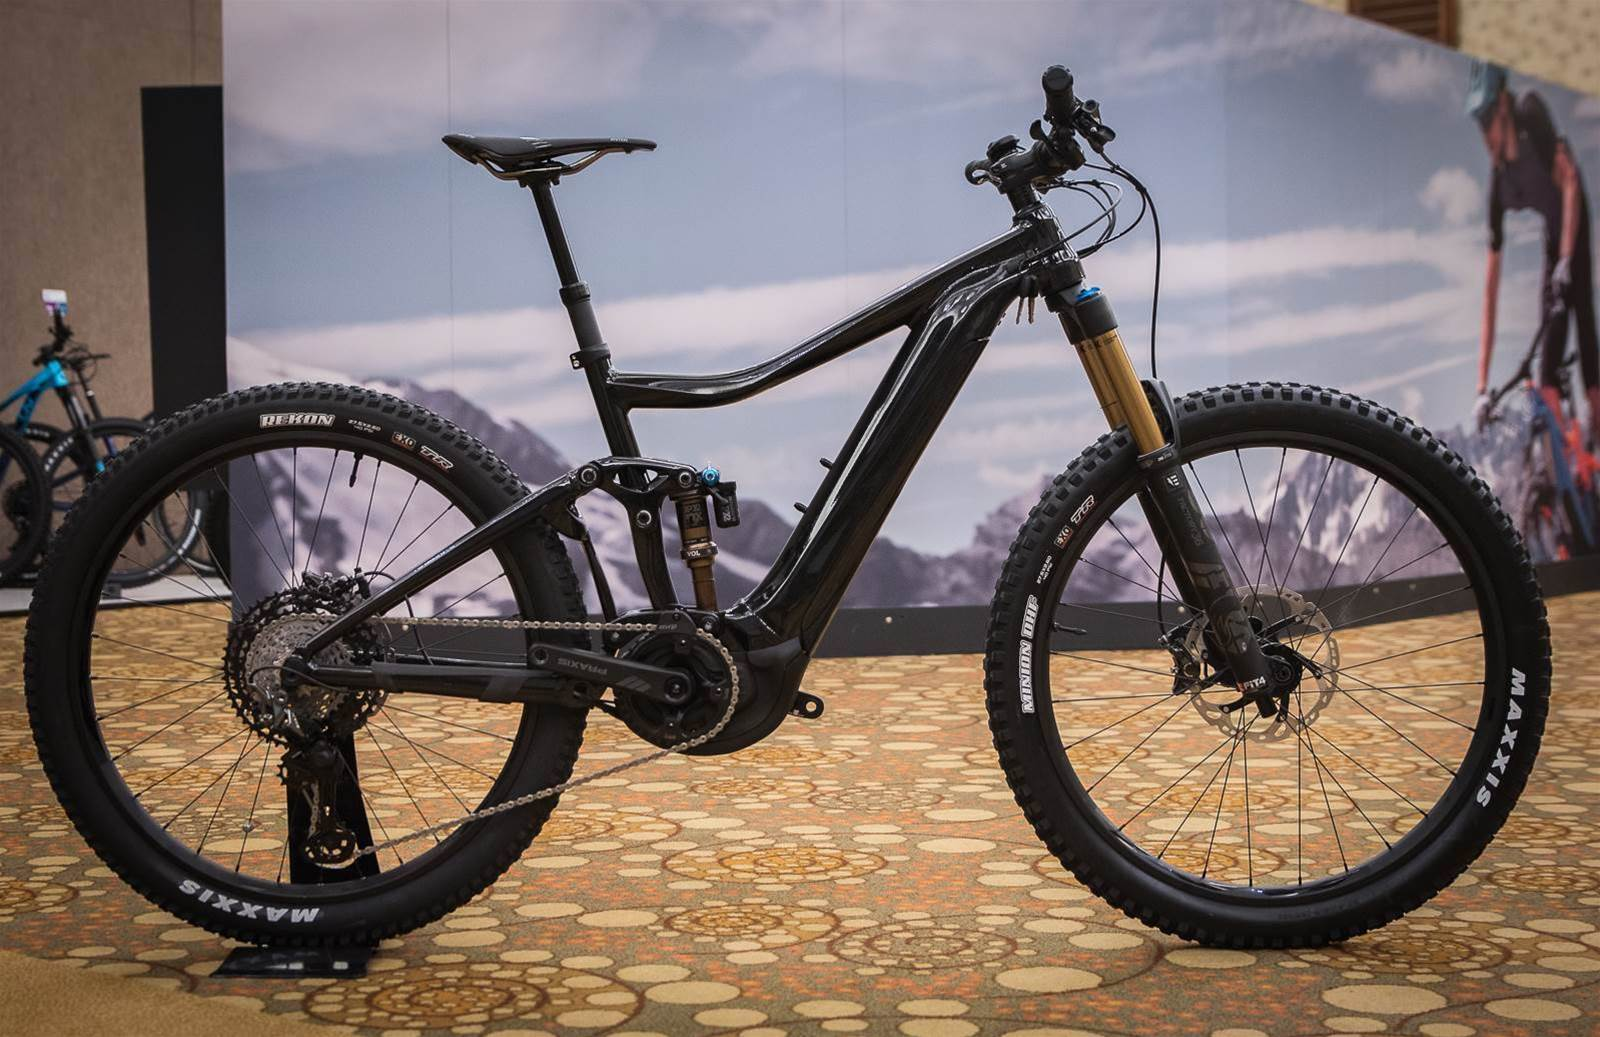 ad67da03079 Giant have 3 other Trance E+ Pro models in the range, and the 150mm forks  put the head angle at 66.d degrees, and the fork rake is now 46mm not 44mm.